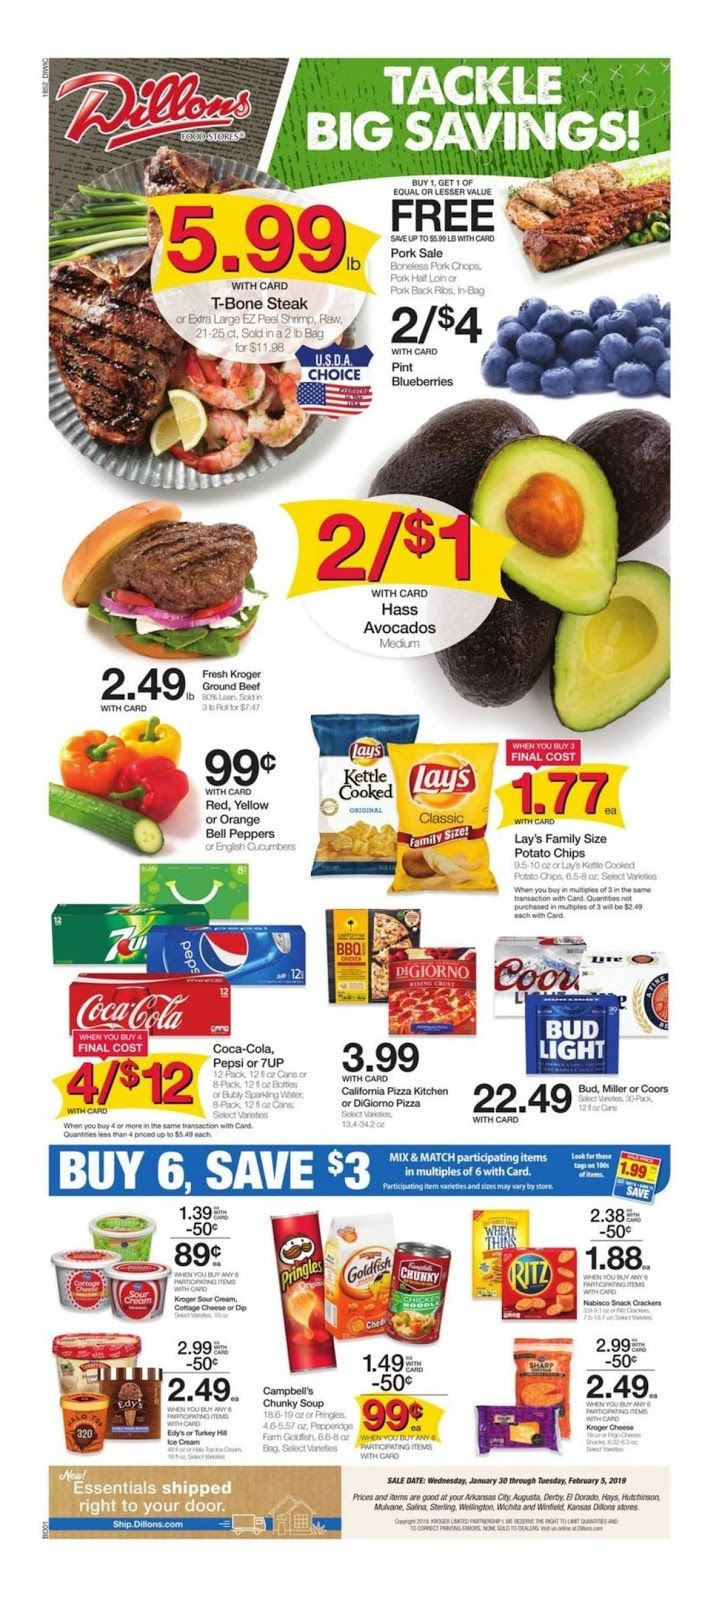 Dillons weekly ad january 30 february 5 2019 in wichita